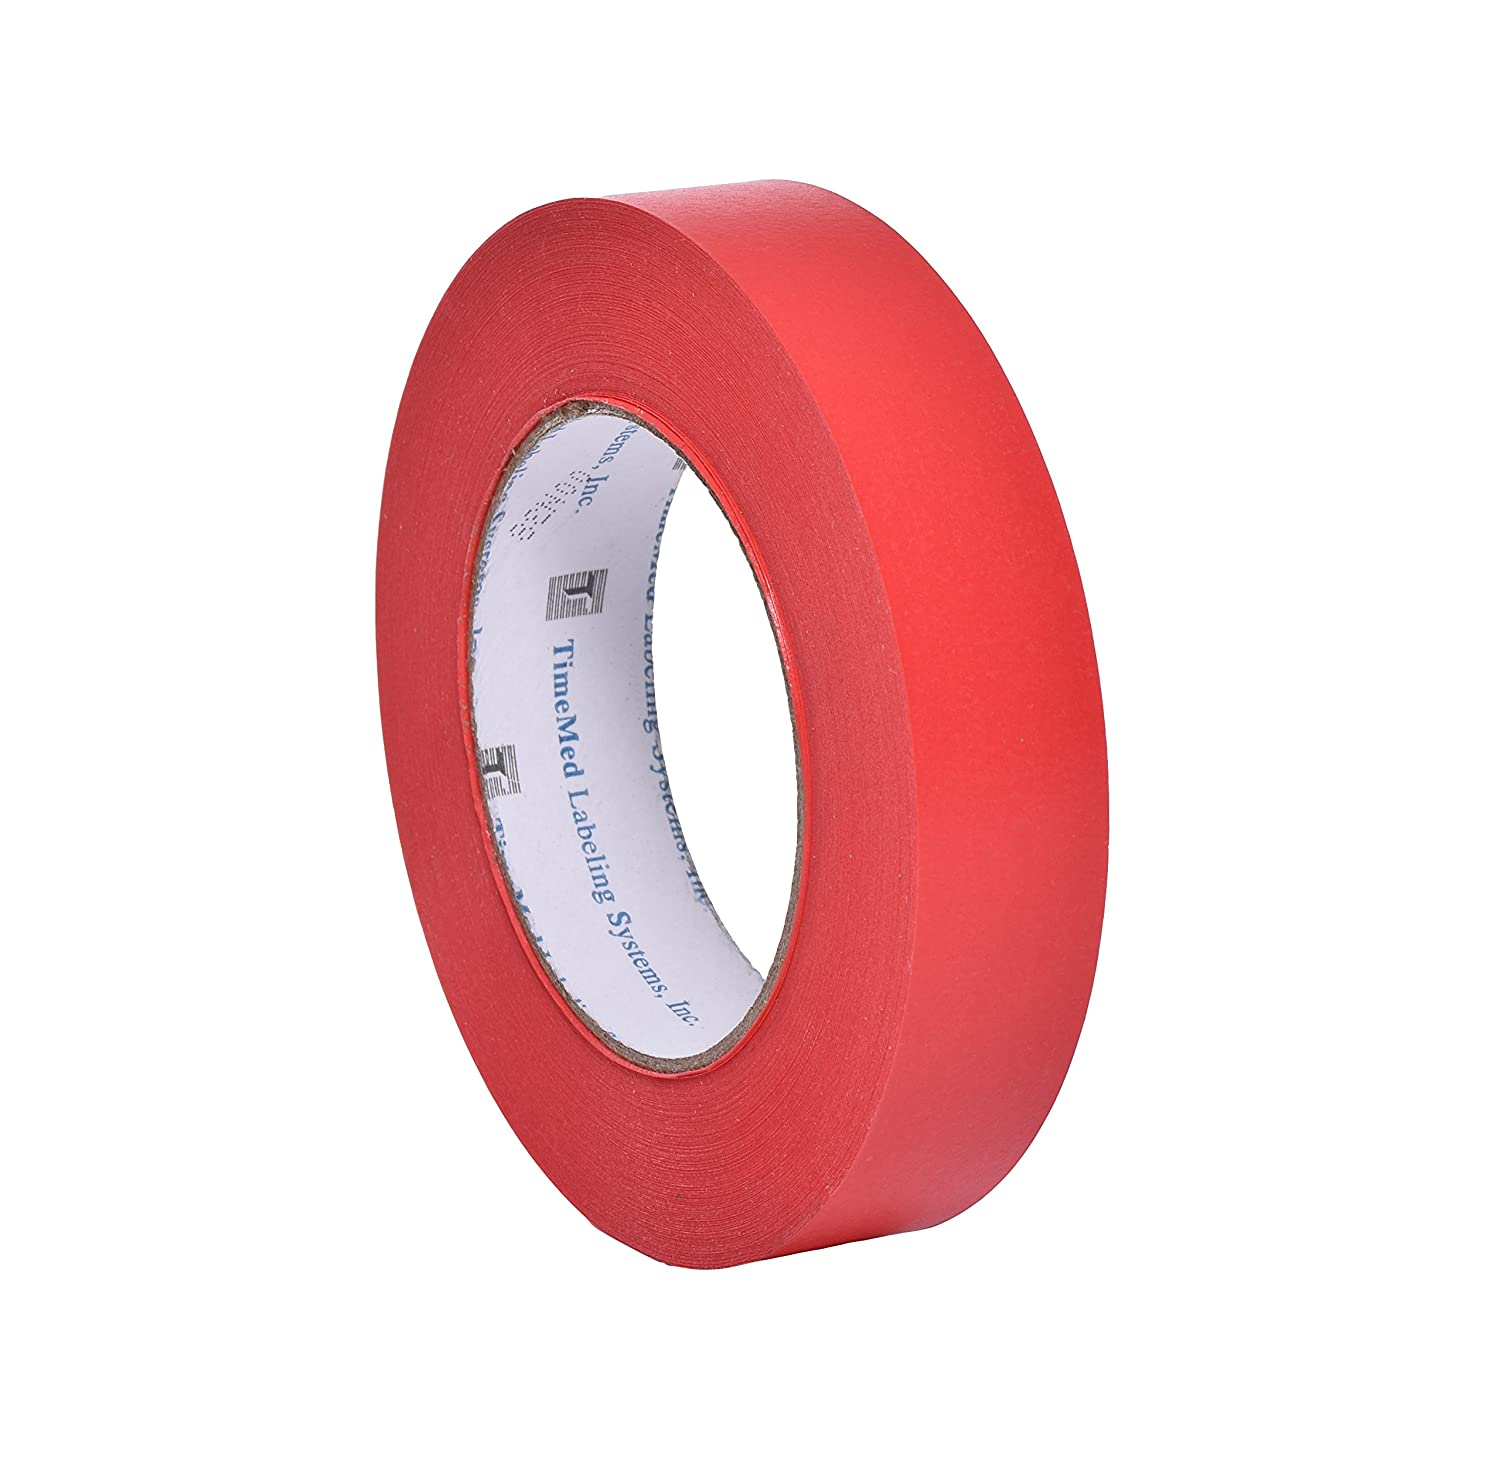 Camlab 1151381 Labelling Tape, 1' Wide, 2160' (55 m) Long, Blue 1 Wide 2160 (55 m) Long